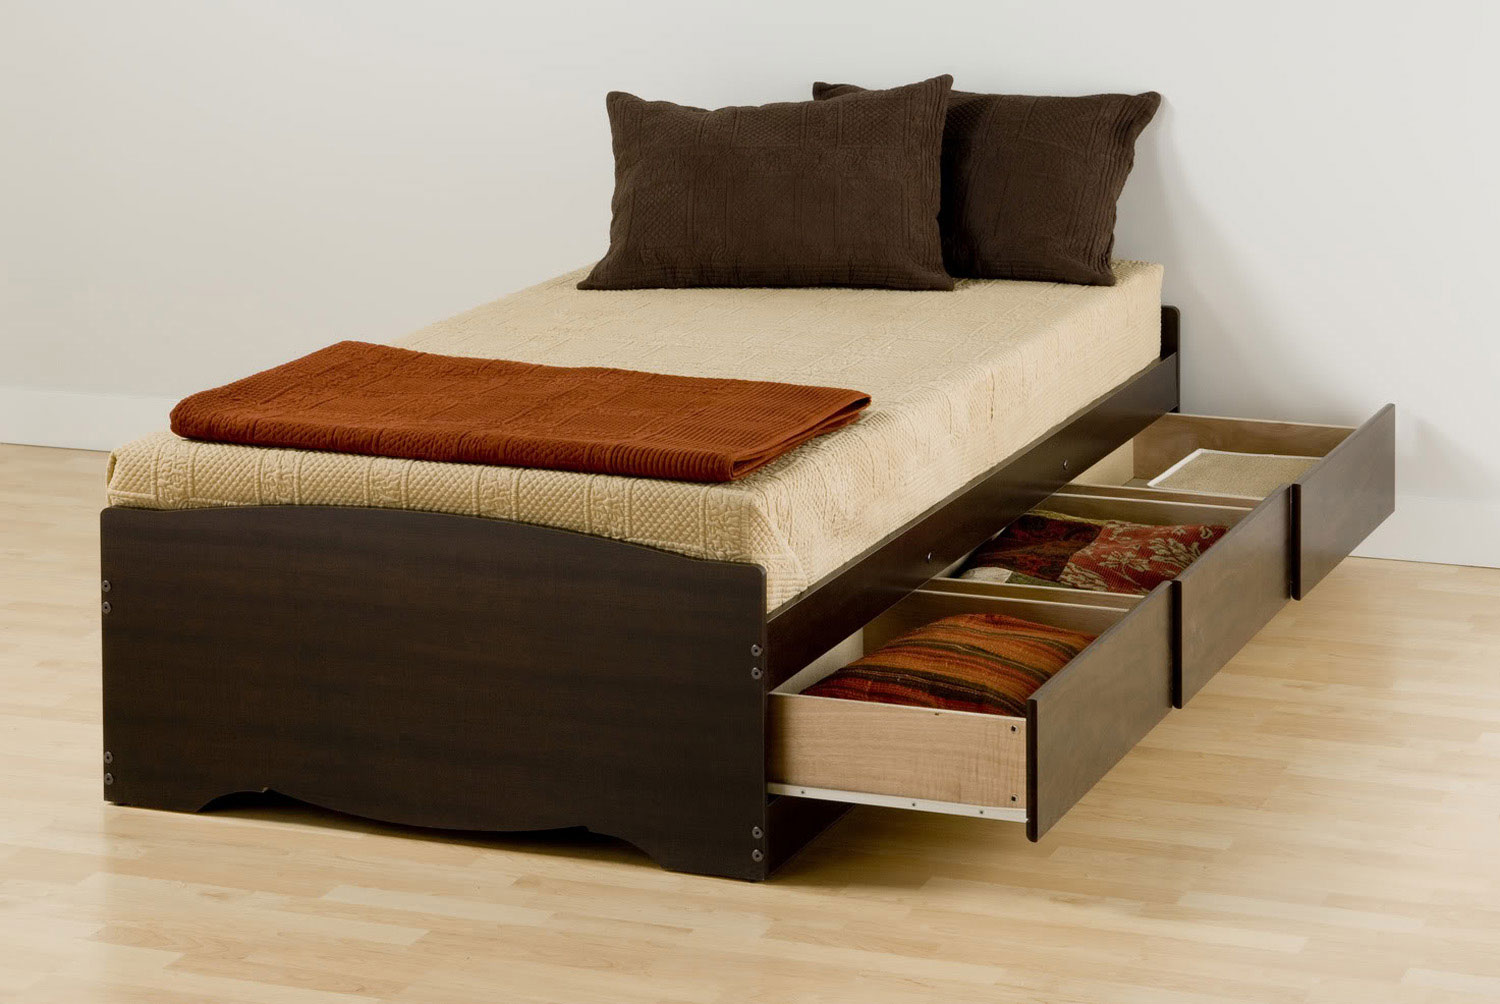 Prepac XL Mate's Platform Storage Bed with 3 Drawers - Espresso